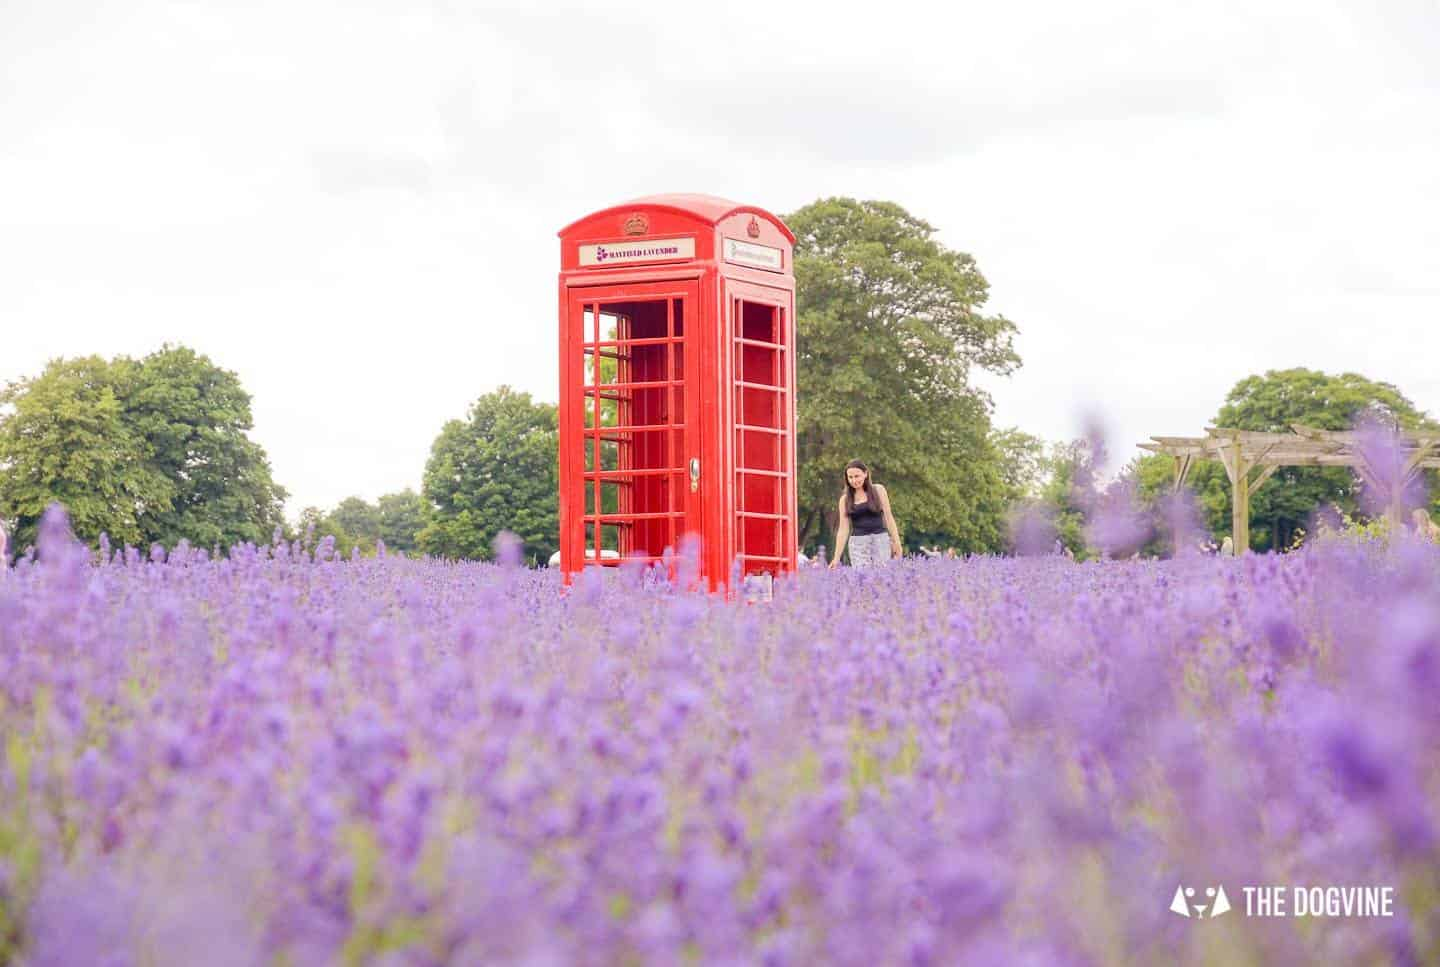 Dog-friendly Mayfield Lavender Farm Phone Box in the Lavender Field